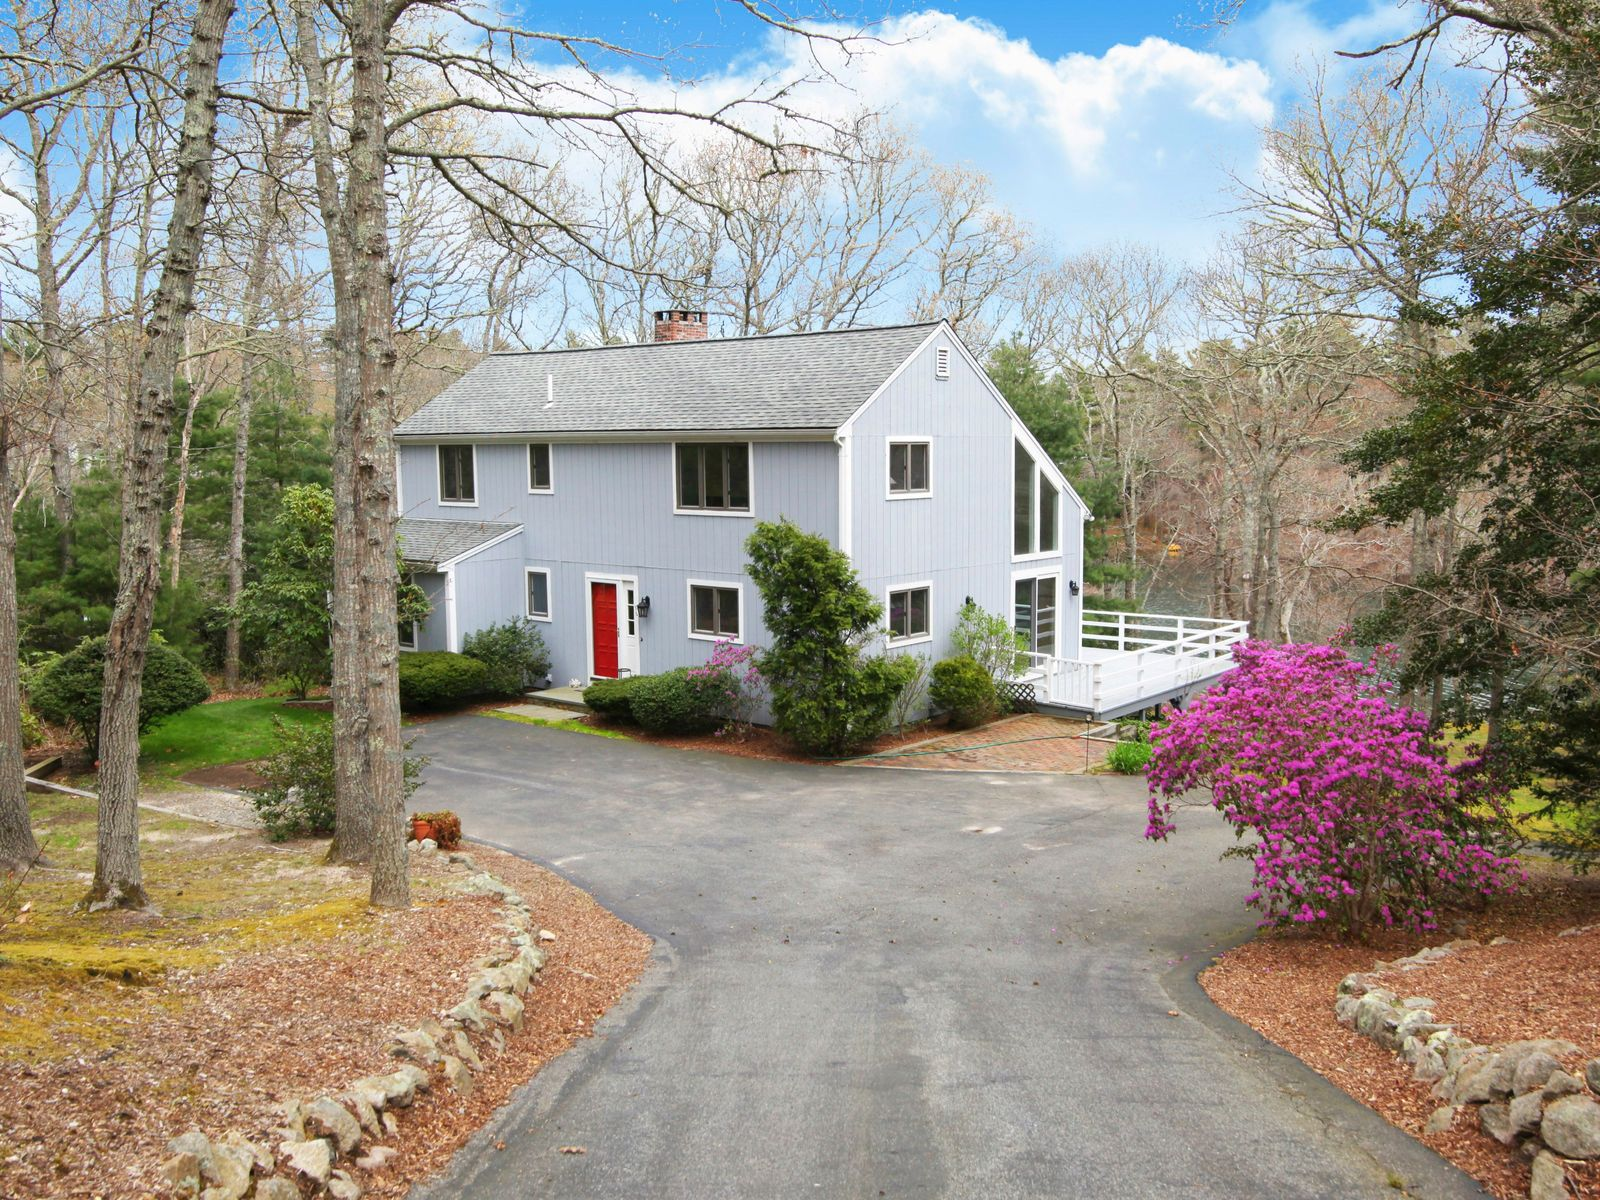 Pondfront Contemporary, Marstons Mills MA Single Family Home - Cape Cod Real Estate